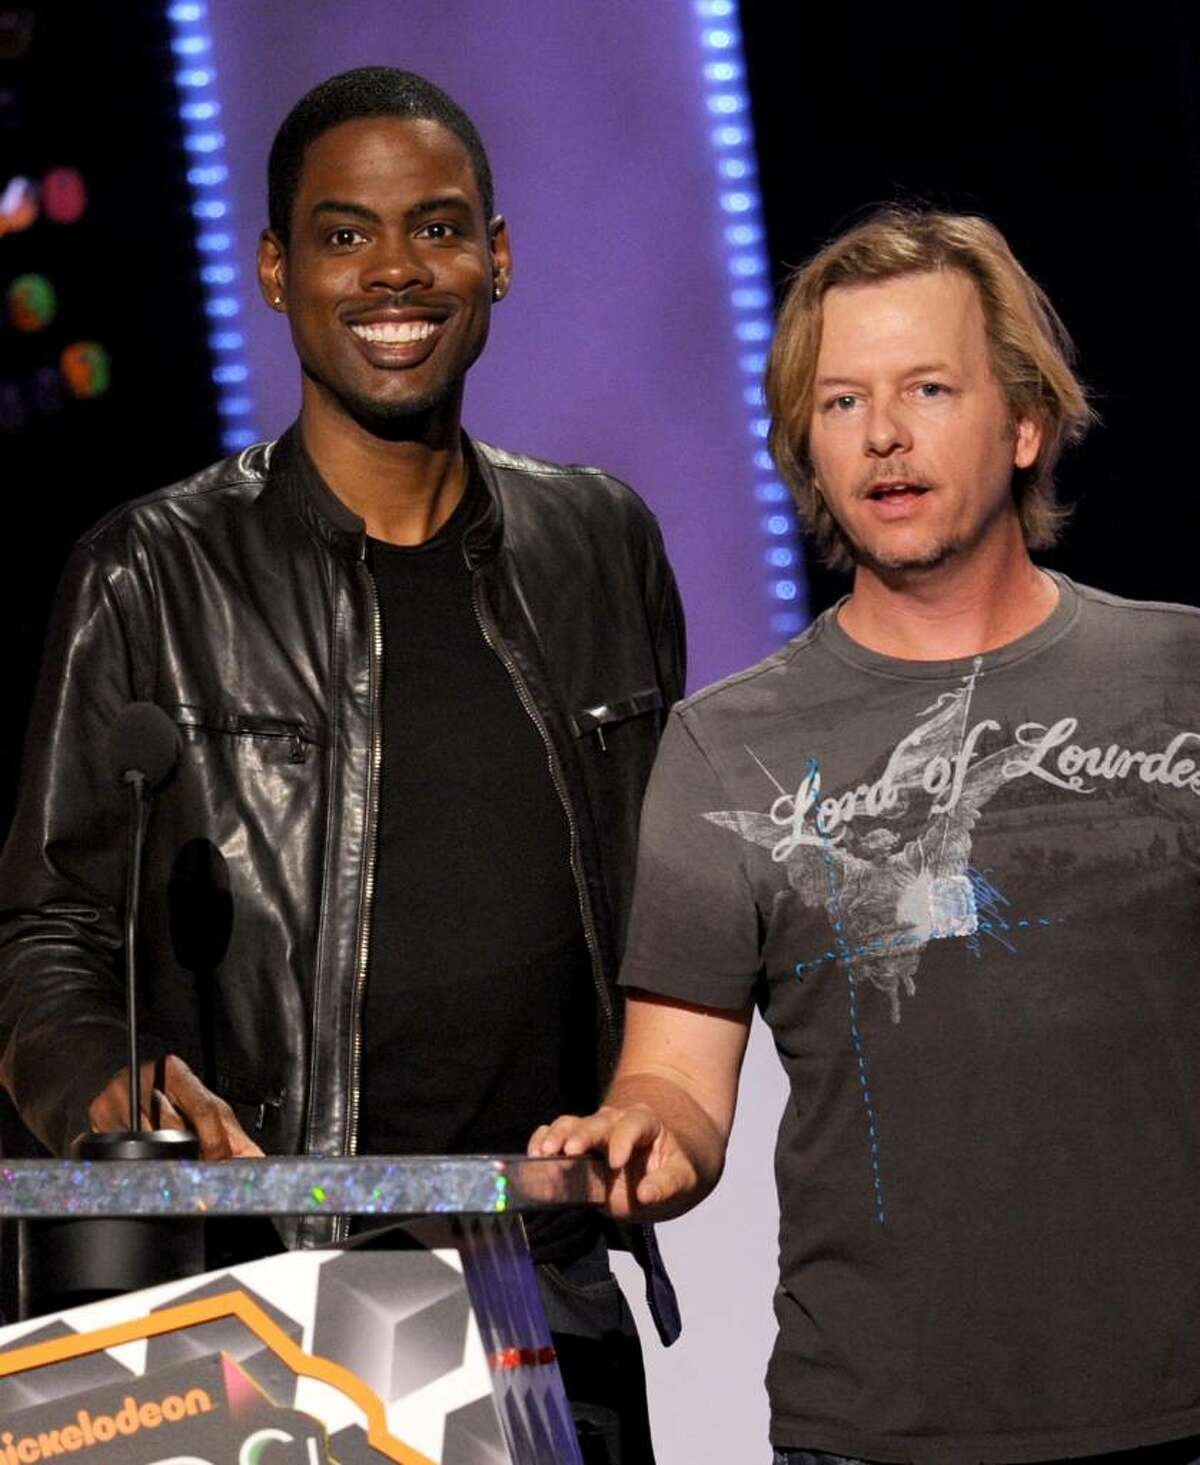 LOS ANGELES, CA - MARCH 27: Actor/comedians Chris Rock (L) and David Spade speak onstage at Nickelodeon's 23rd Annual Kids' Choice Awards held at UCLA's Pauley Pavilion on March 27, 2010 in Los Angeles, California. (Photo by Kevin Winter/Getty Images for KCA) *** Local Caption *** Chris Rock;David Spade